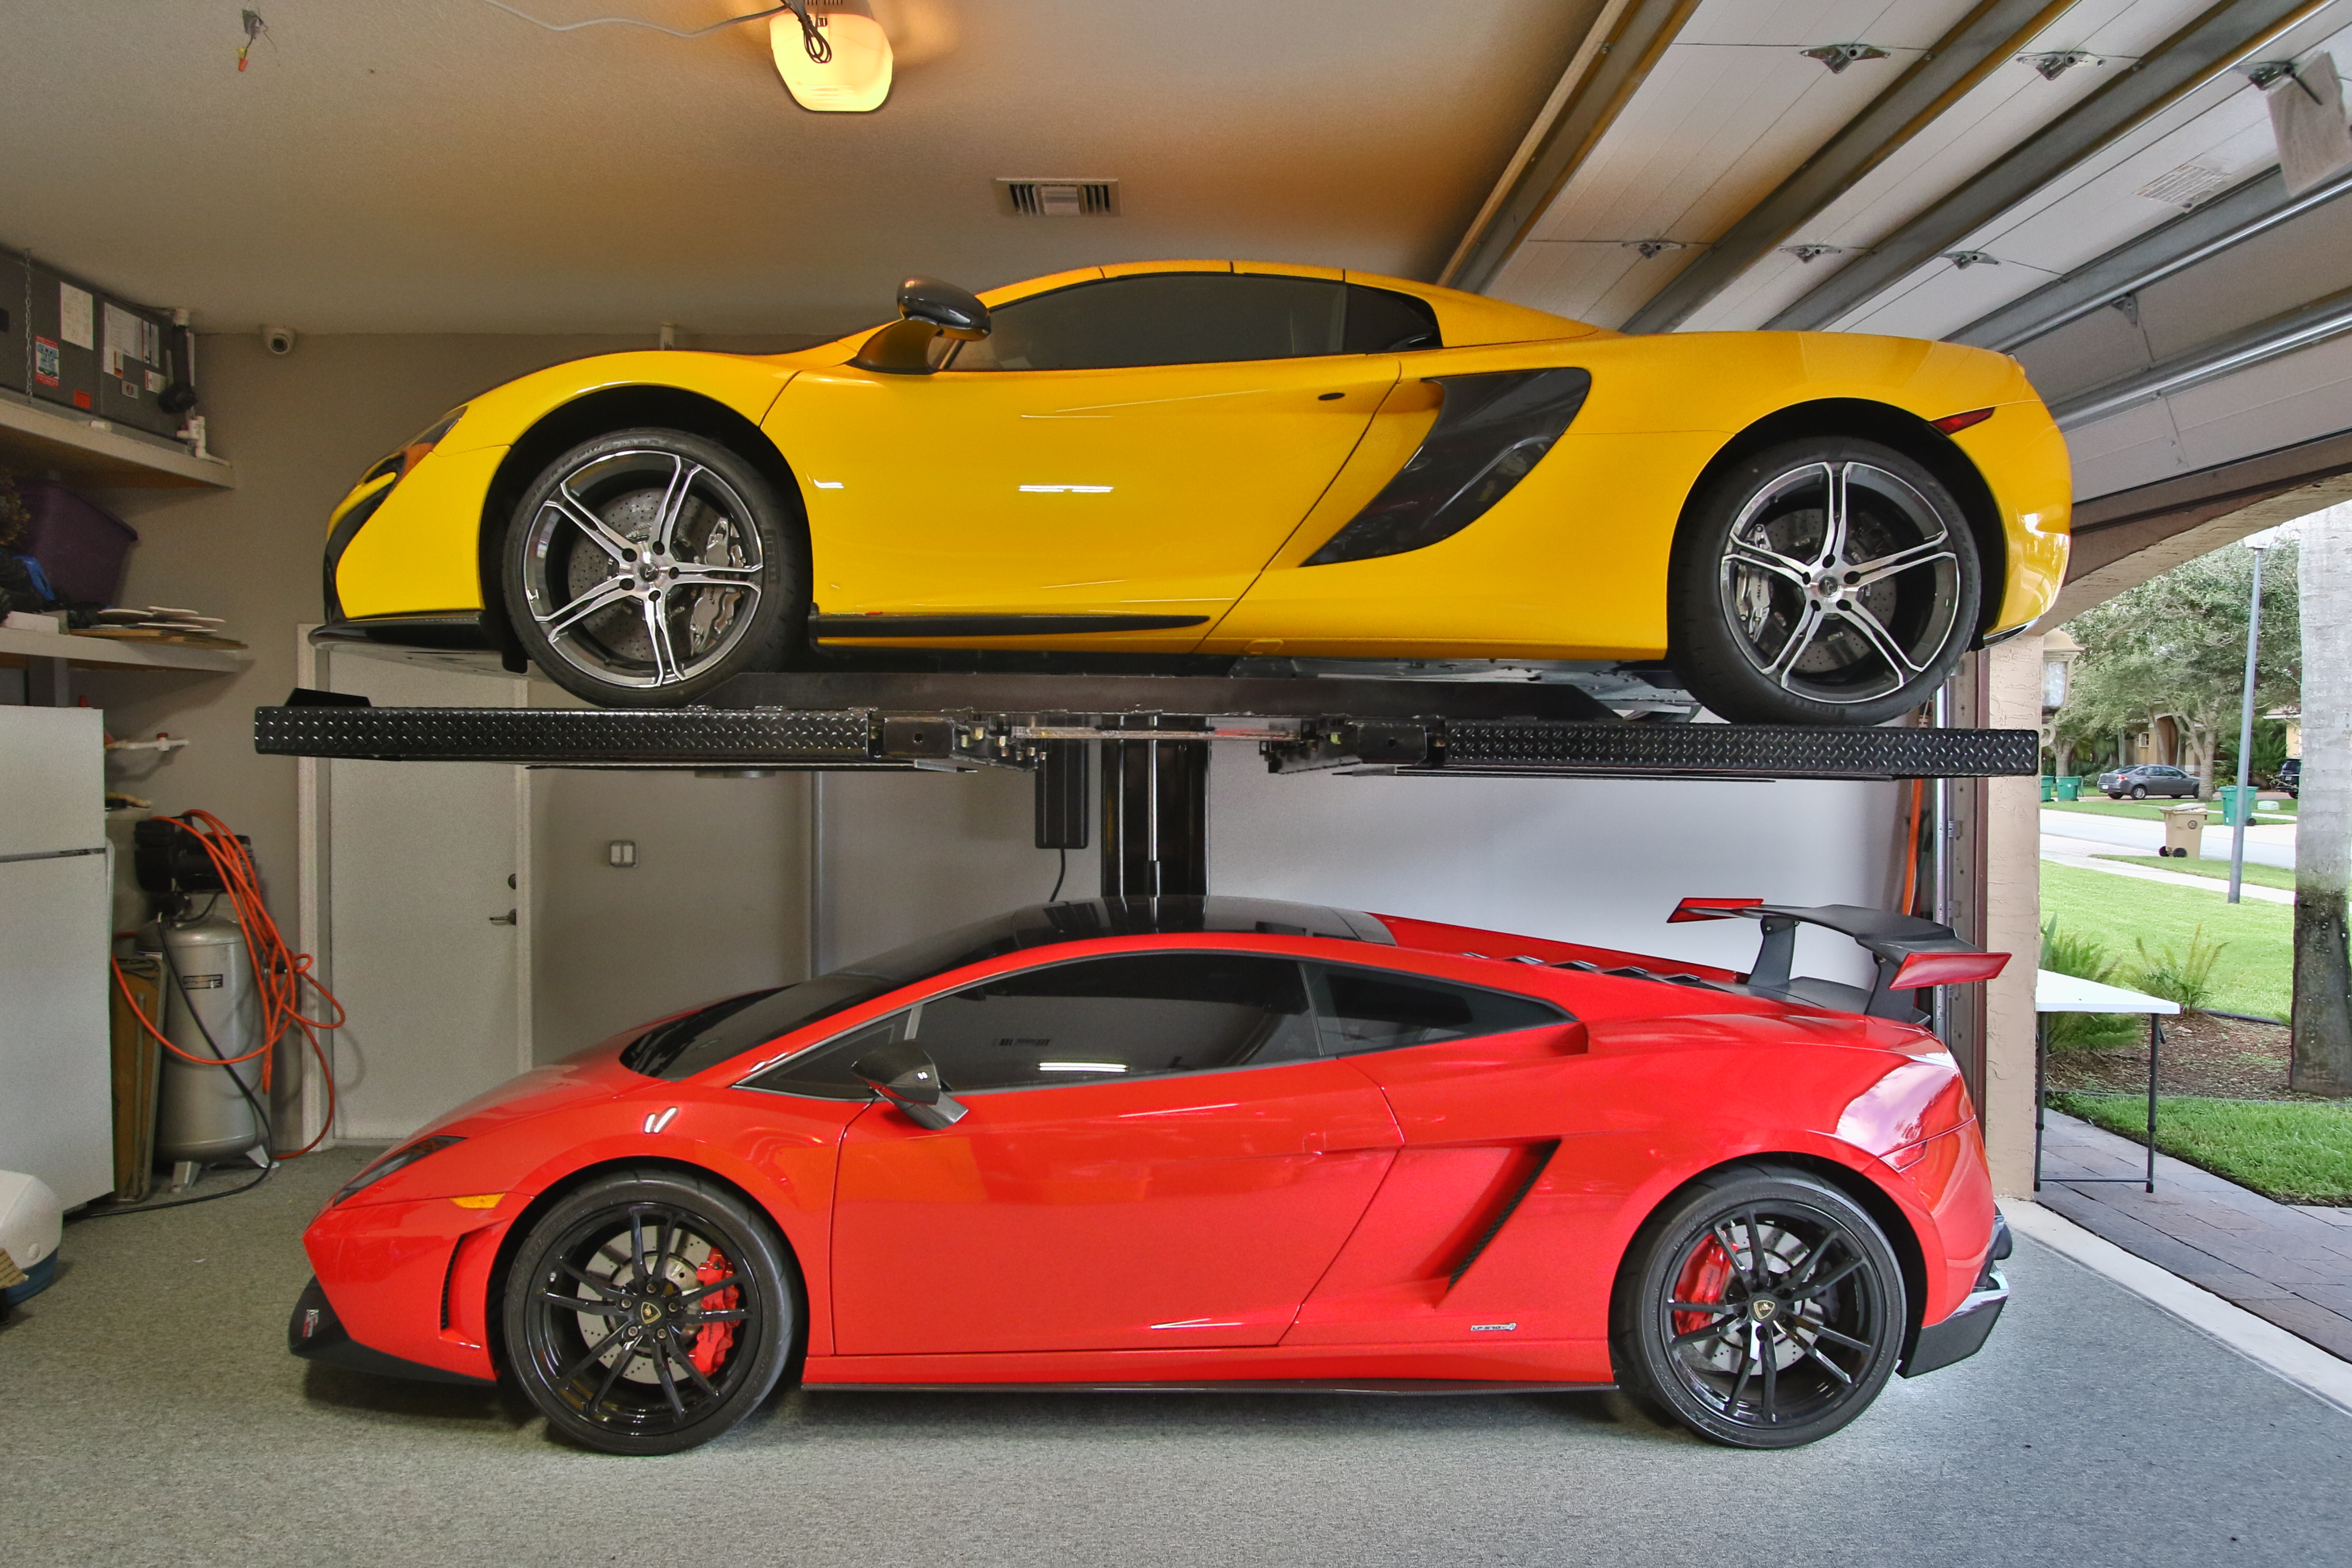 Garage Car Lift Images American Custom Lifts M1 4 5 Single Post Car Lift Install And